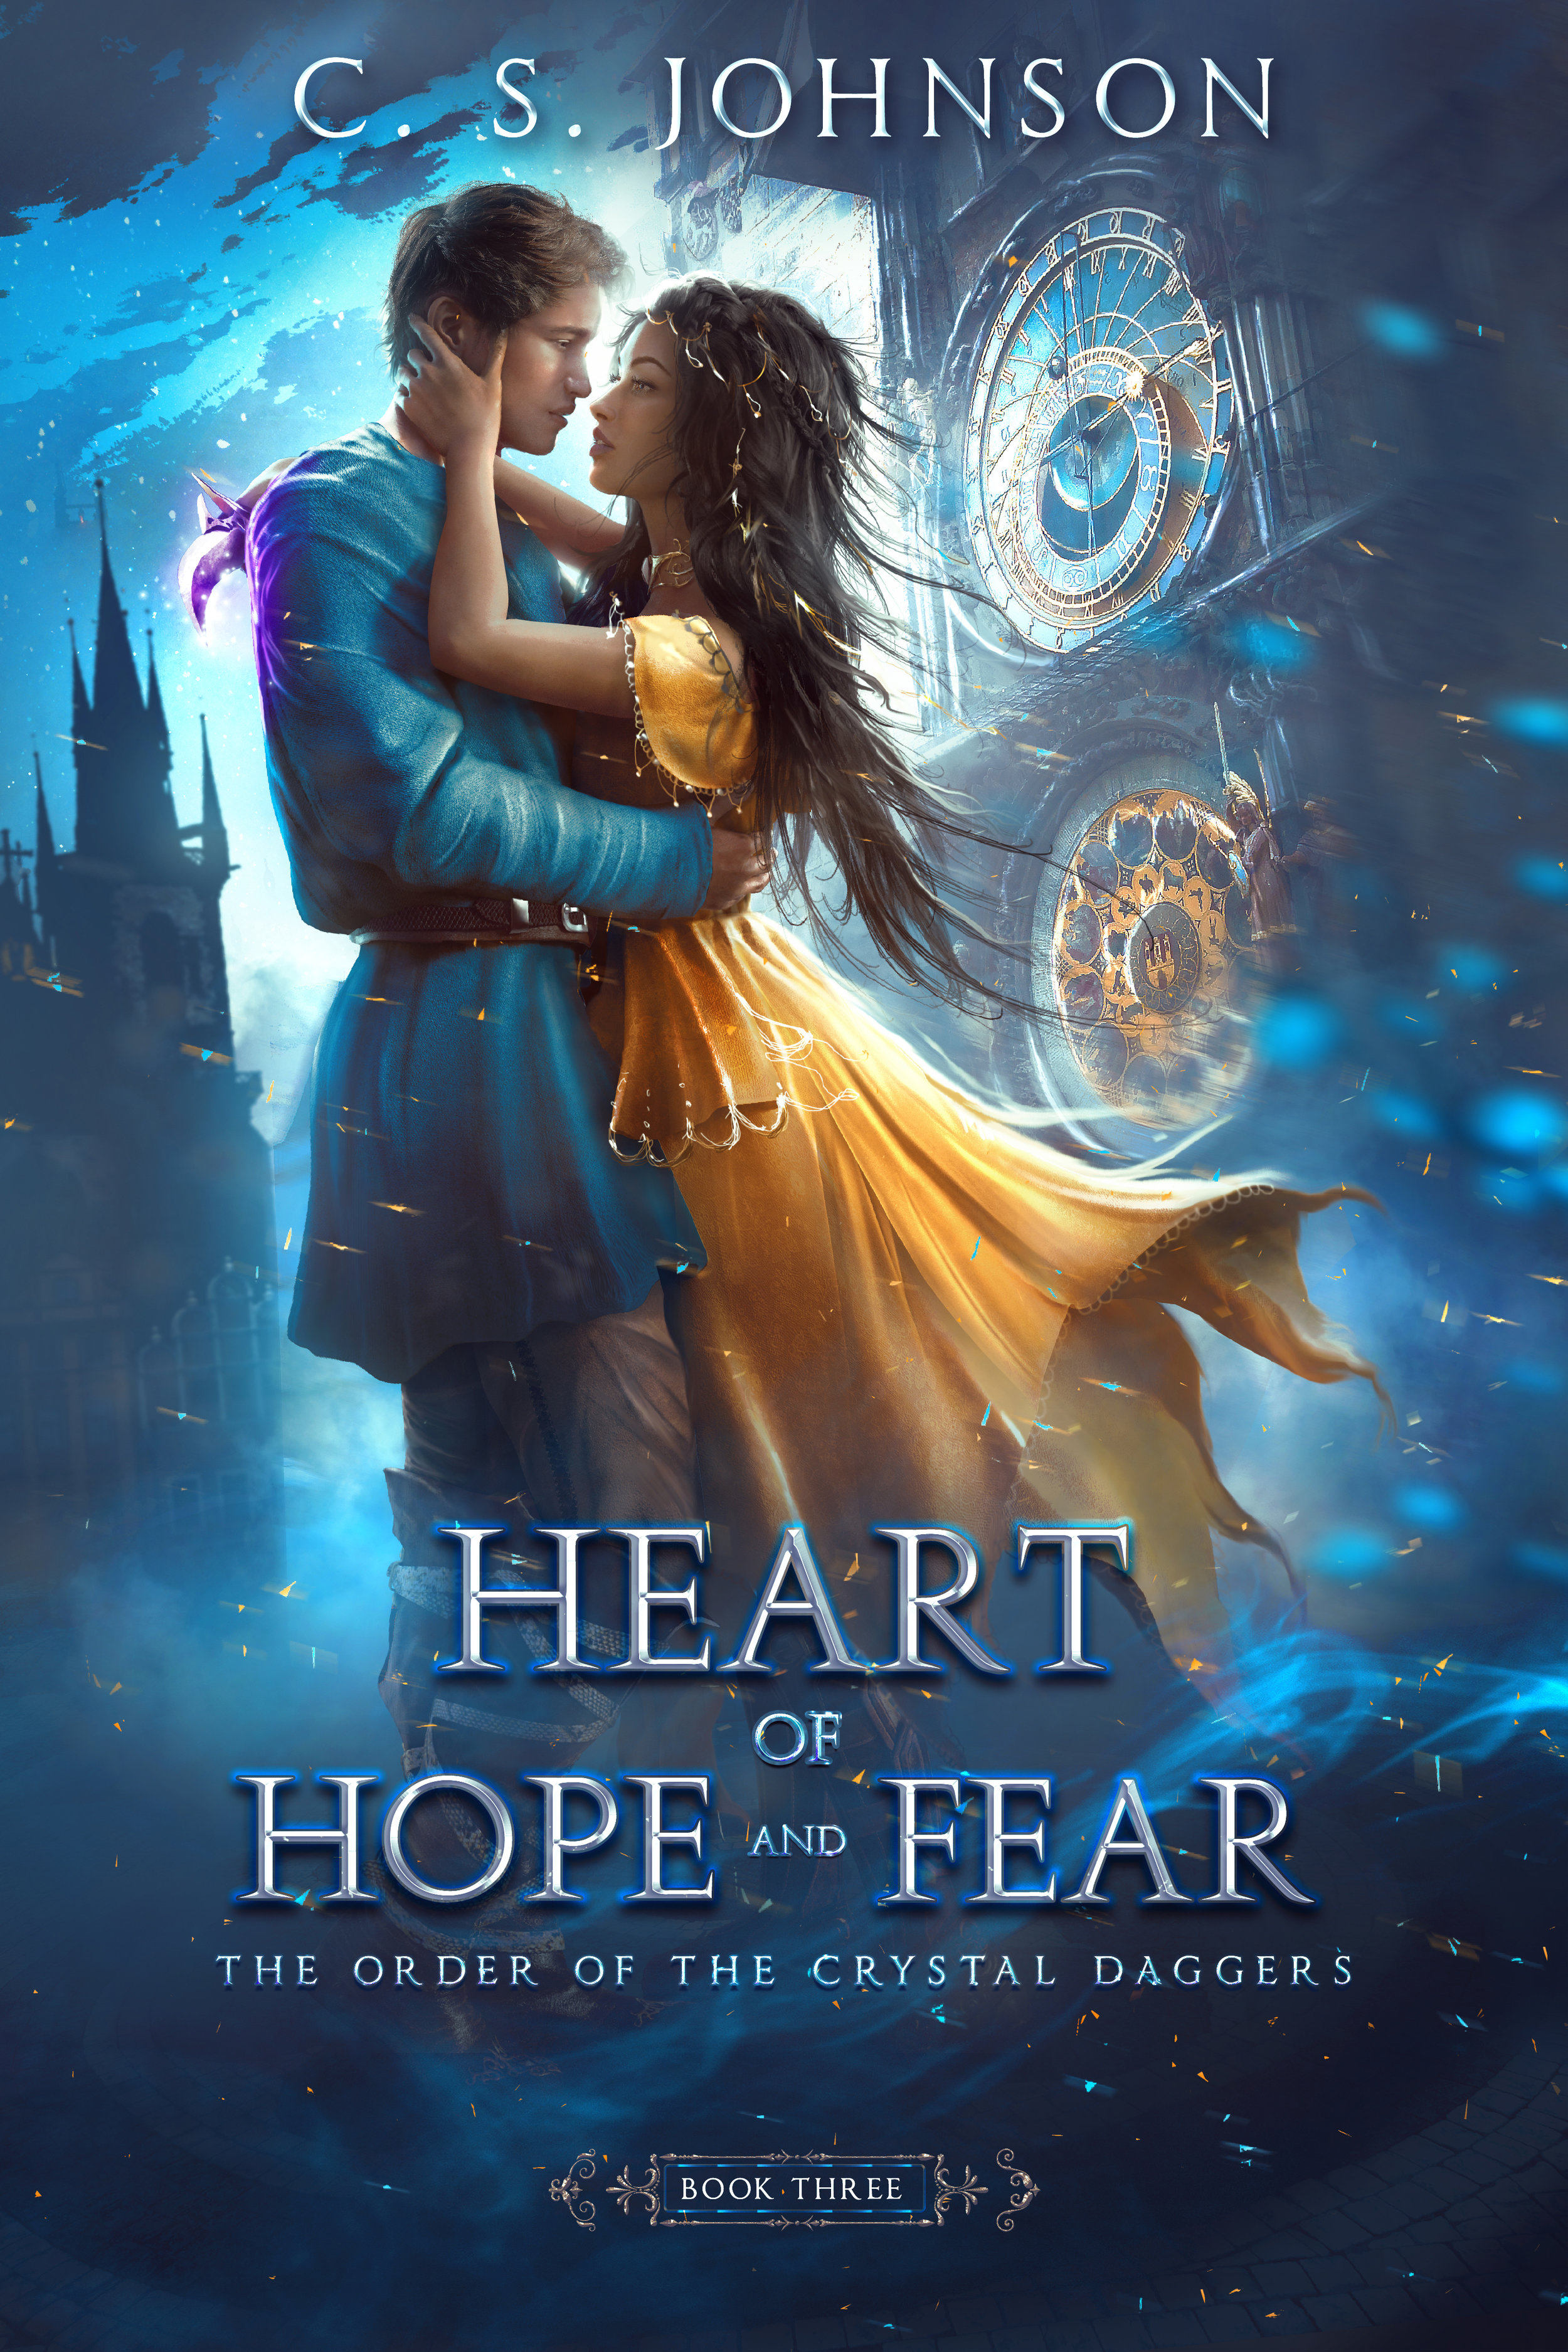 3 Heart of Hope and Fear front cover.jpg